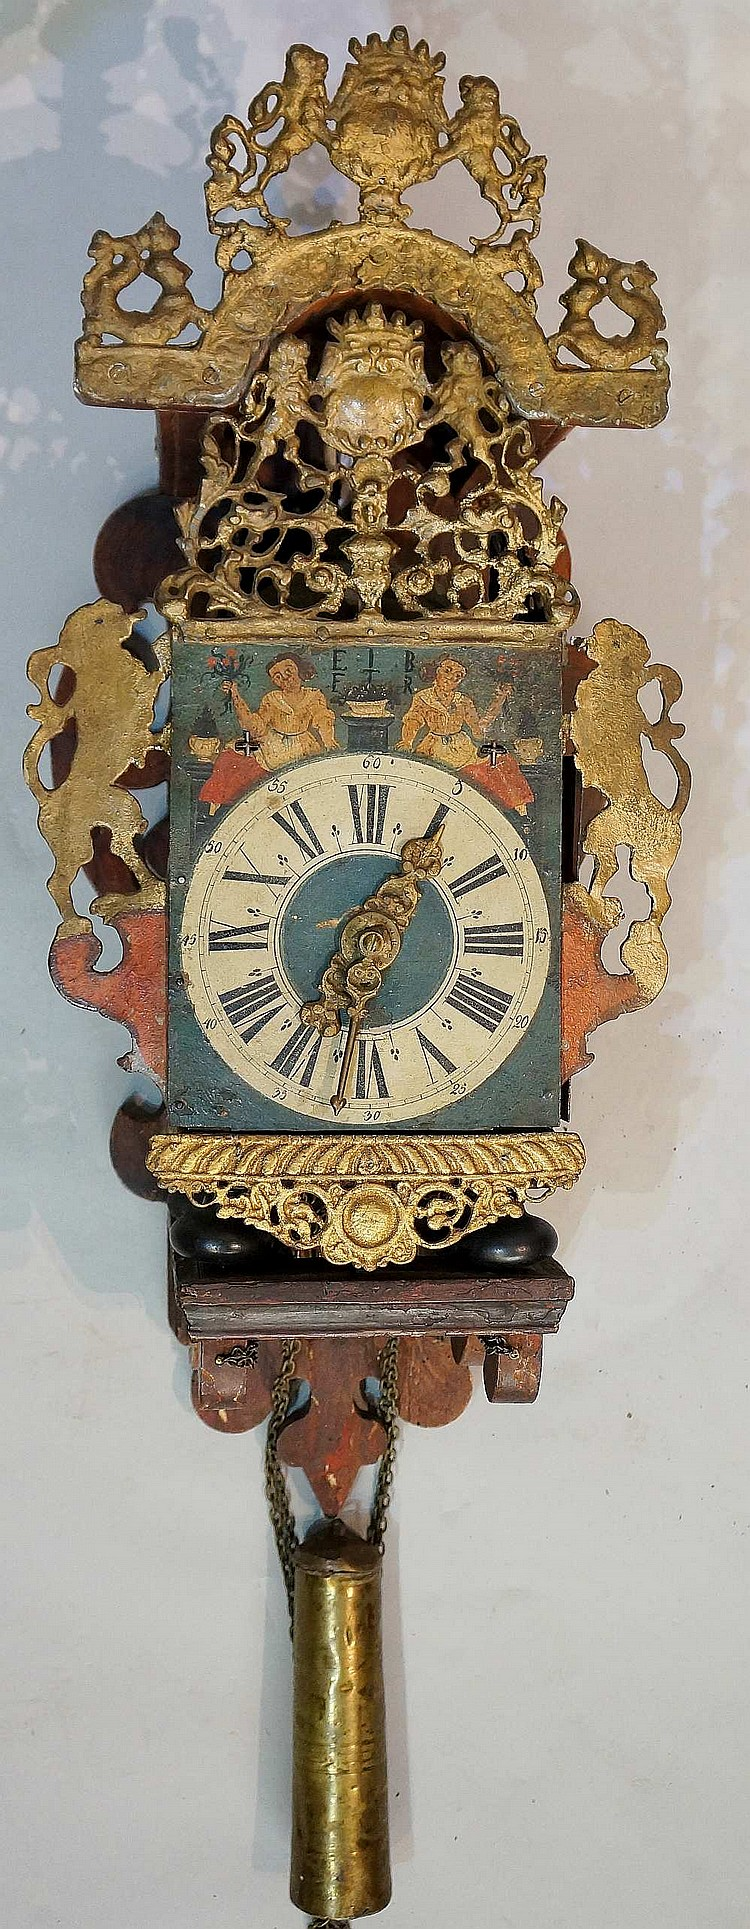 A late 18th Century Dutch polychrome decorated wall clock with gold painted